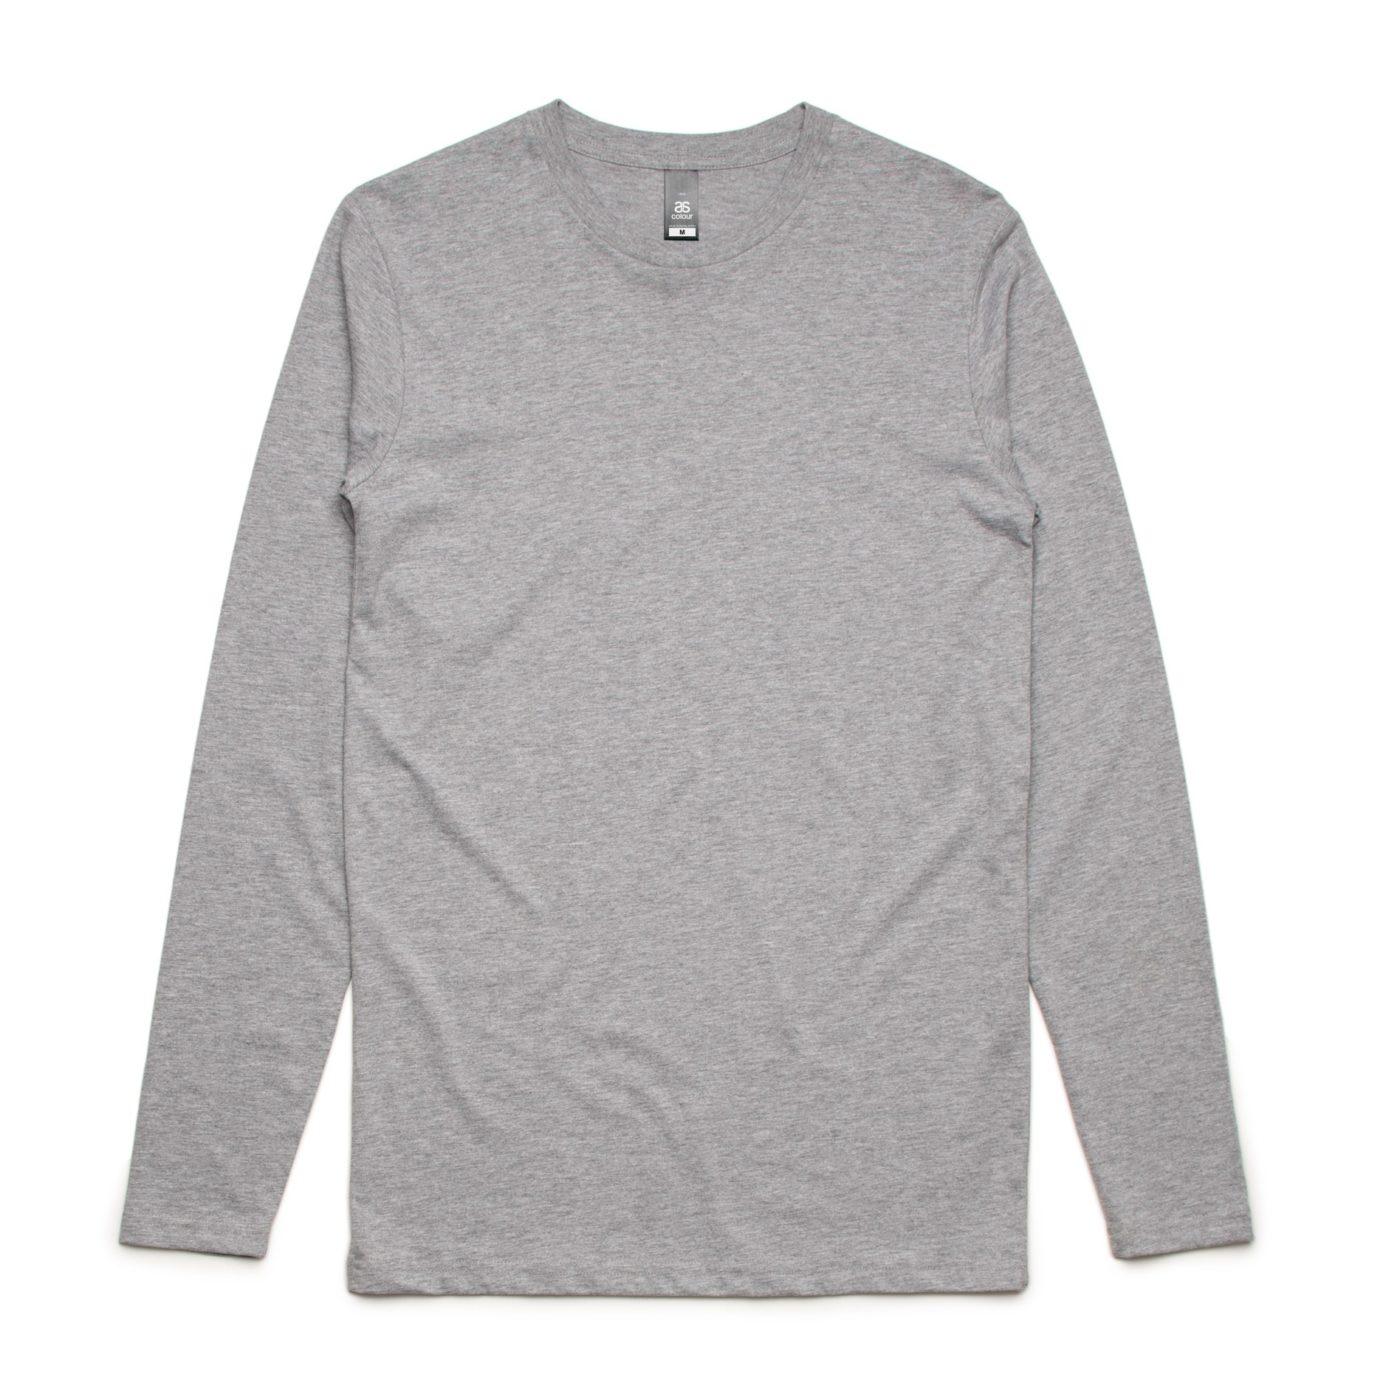 AS 5009 ink Long Sleeve tee print Grey Marle